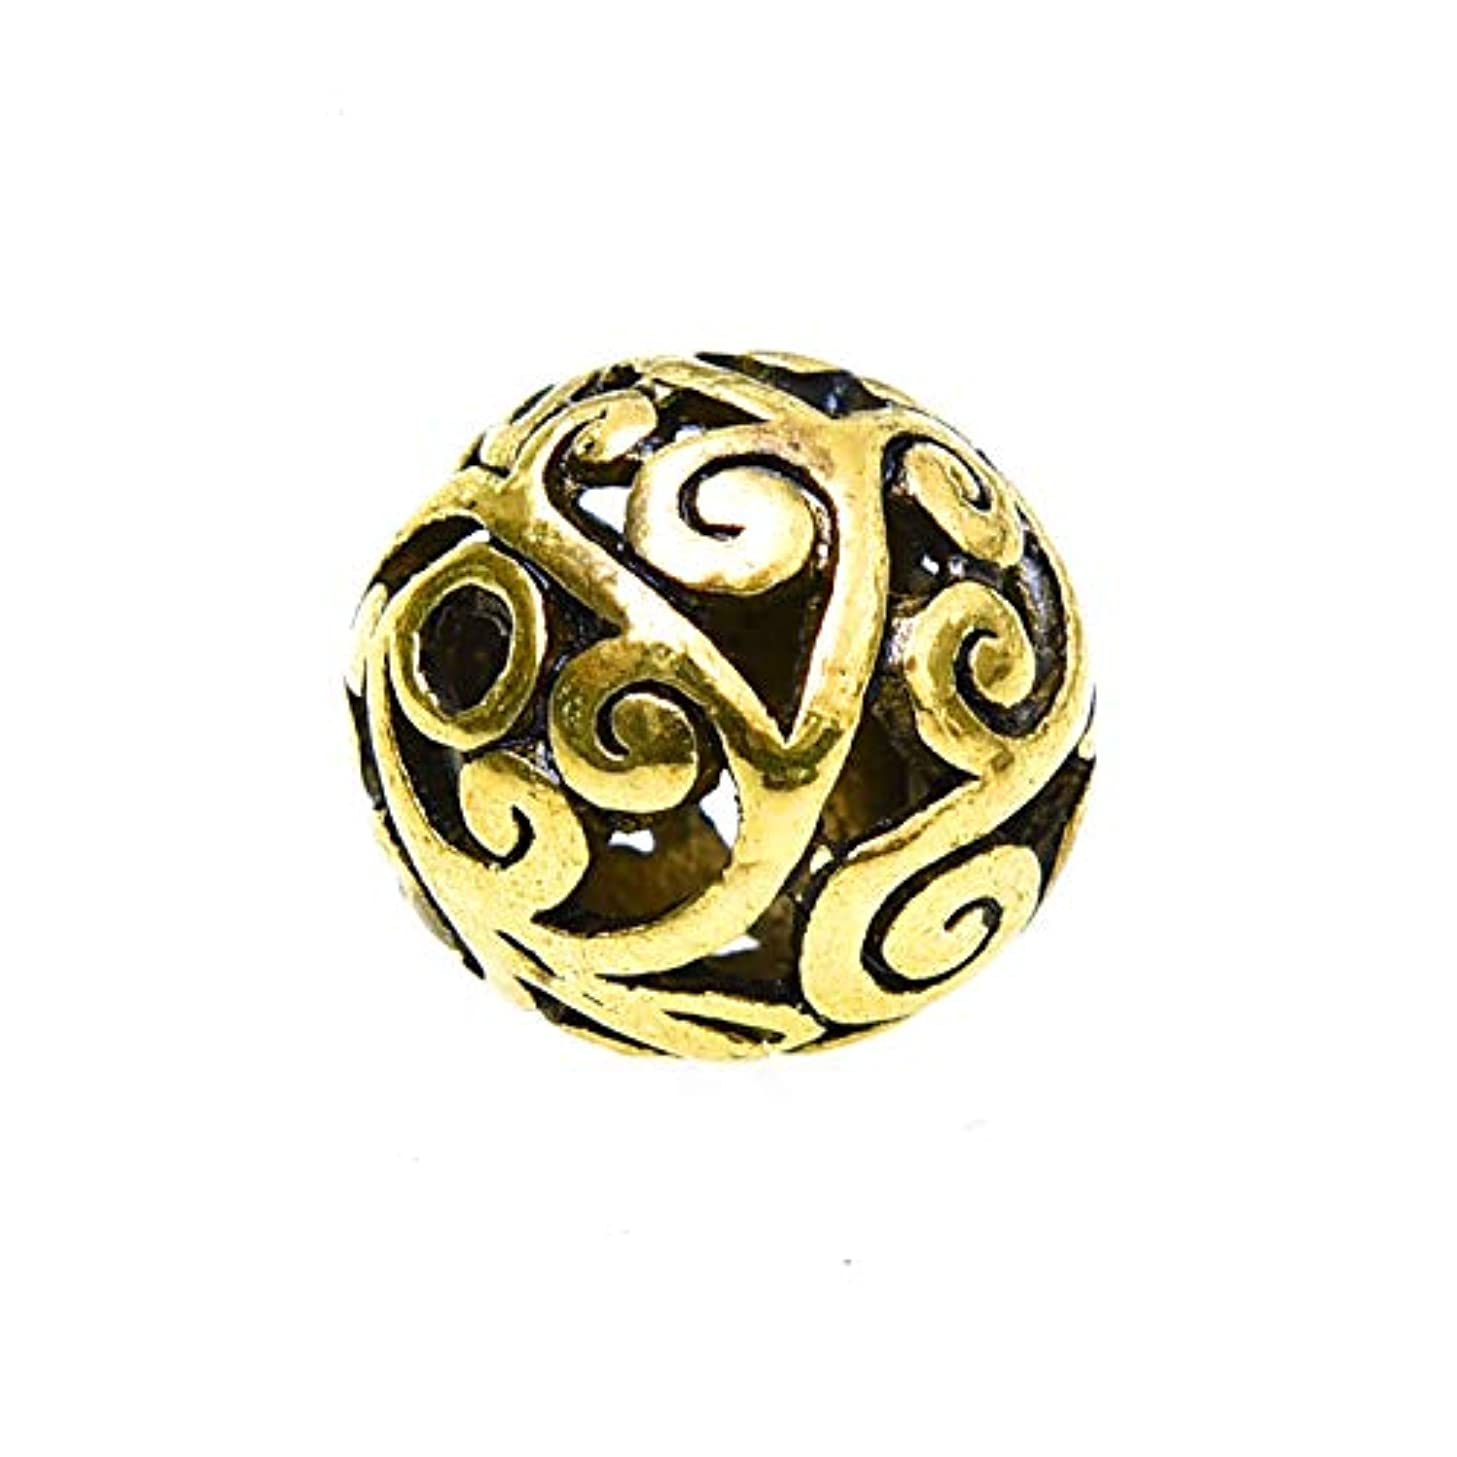 Monrocco 15 Pieces Loose Beads Round Hollow Spacer Beads Antique Alloy Tibetan Style Beads for Jewelry Making Handmade Bracelets Accessories Crafts Decoration